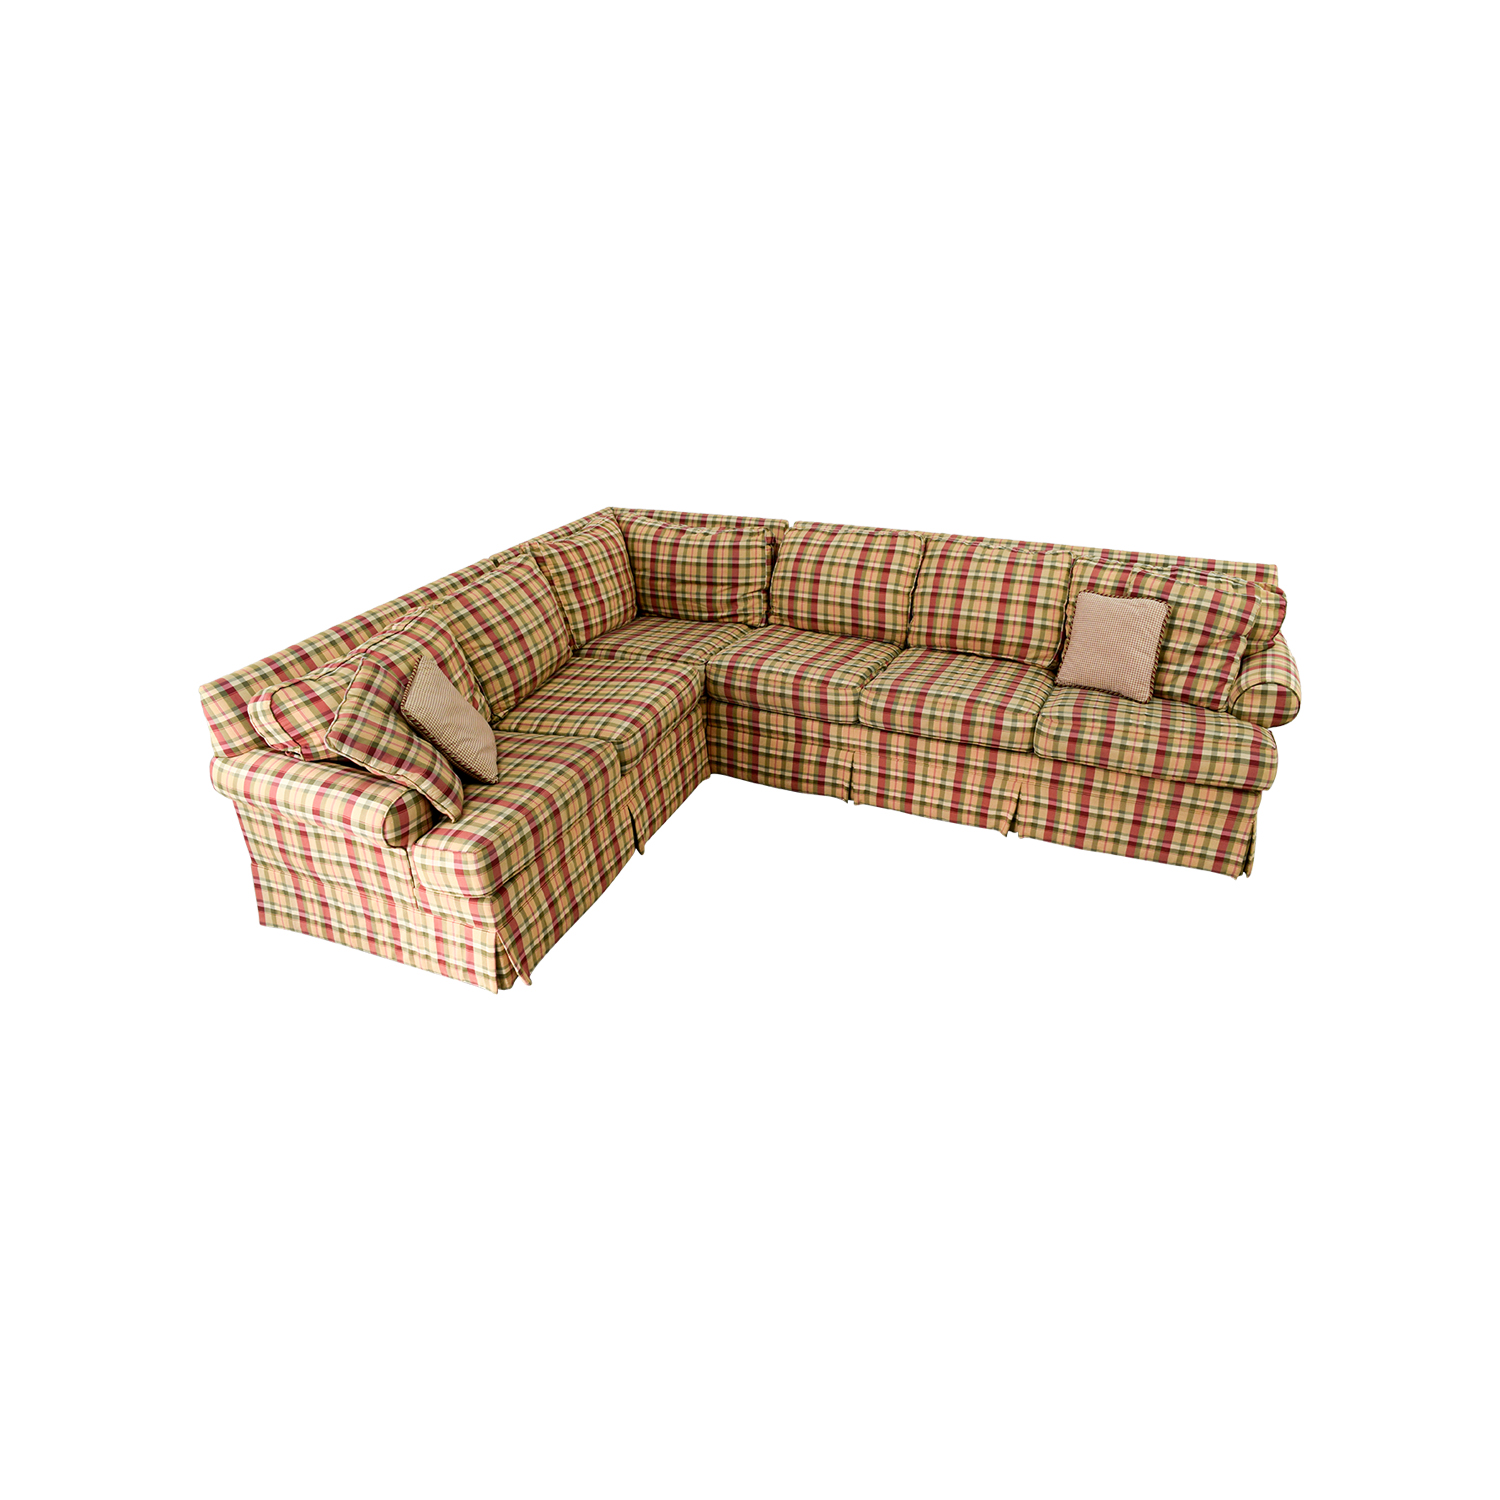 90% OFF - Ethan Allen Ethan Allen Retreat Roll Arm Plaid Four Piece  Sectional / Sofas